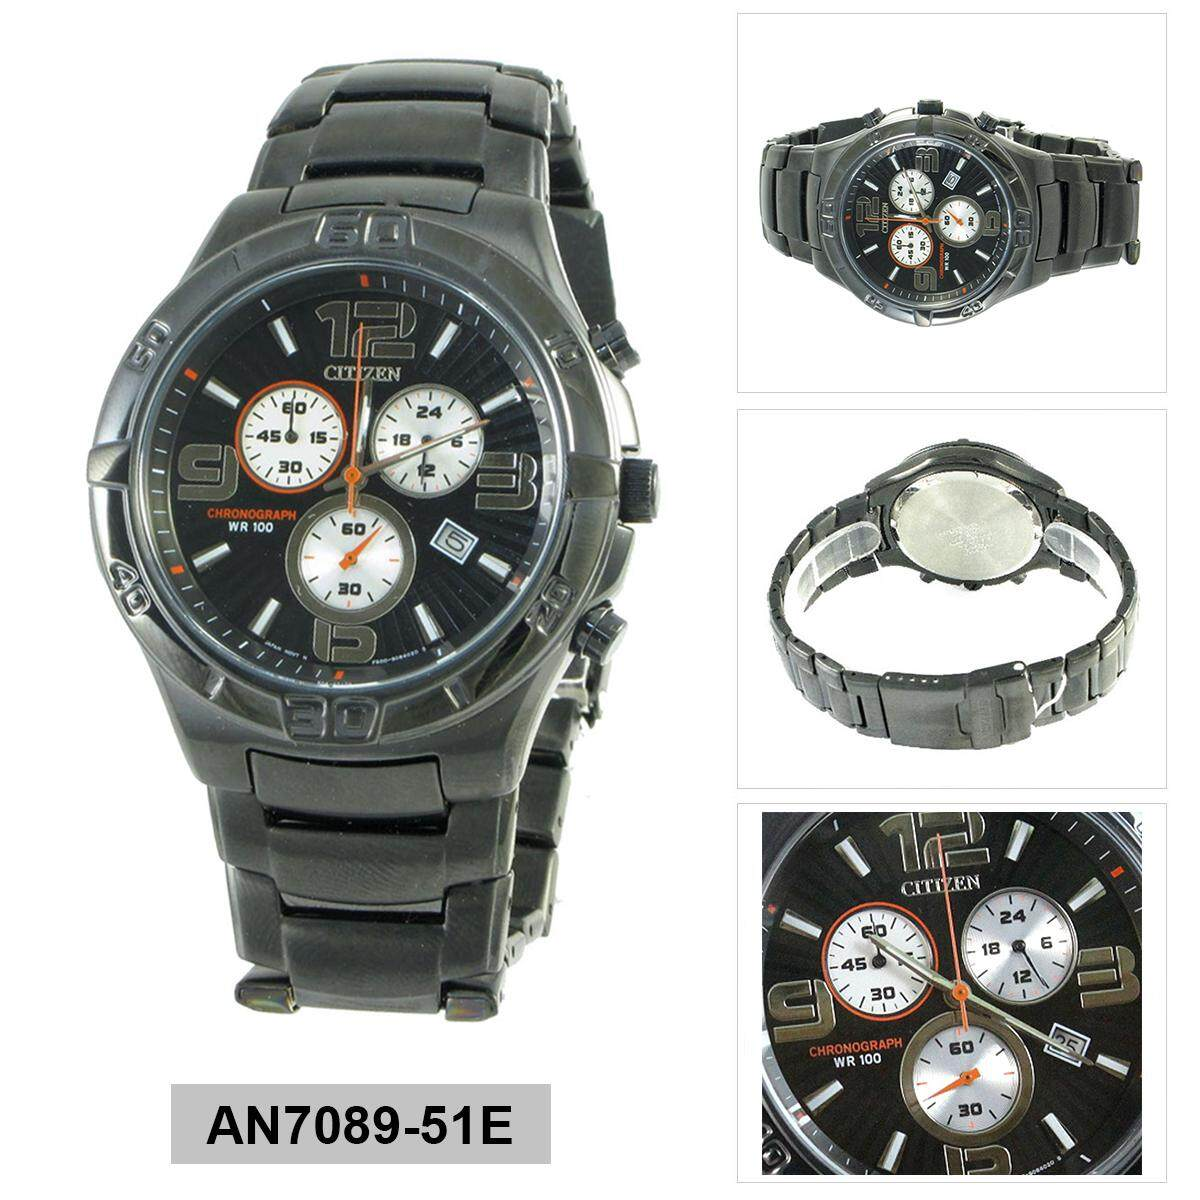 Fitur Citizen Aw7010 54e Stainless Steel Mens Watch Dan Harga Nh8388 81e Chronograph Black Case Bracelet An7089 51e